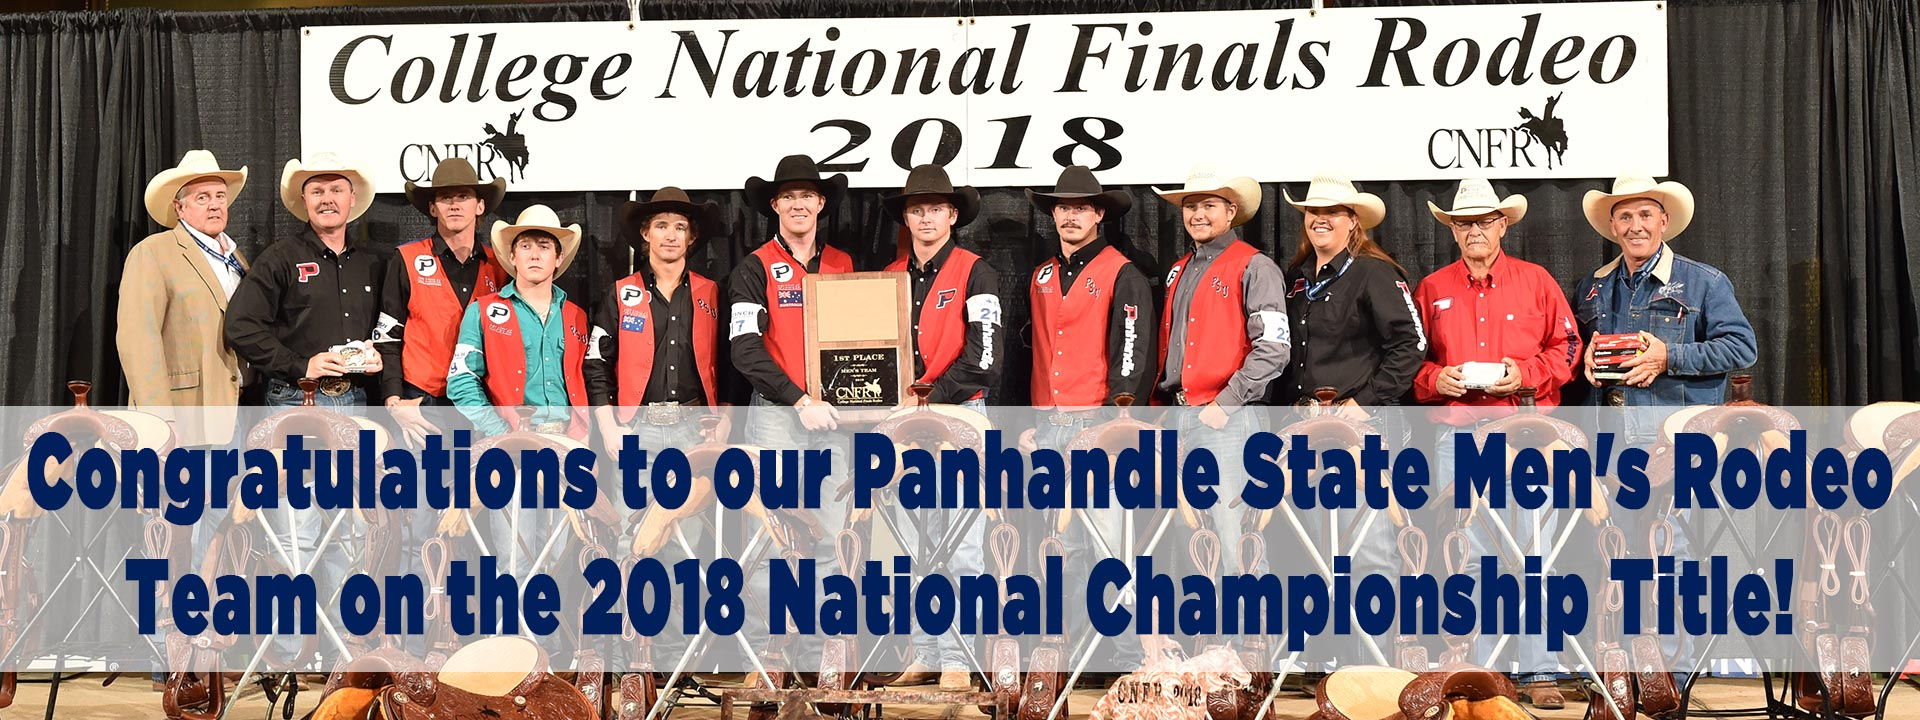 Image of the rodeo team at 2018 CNFR